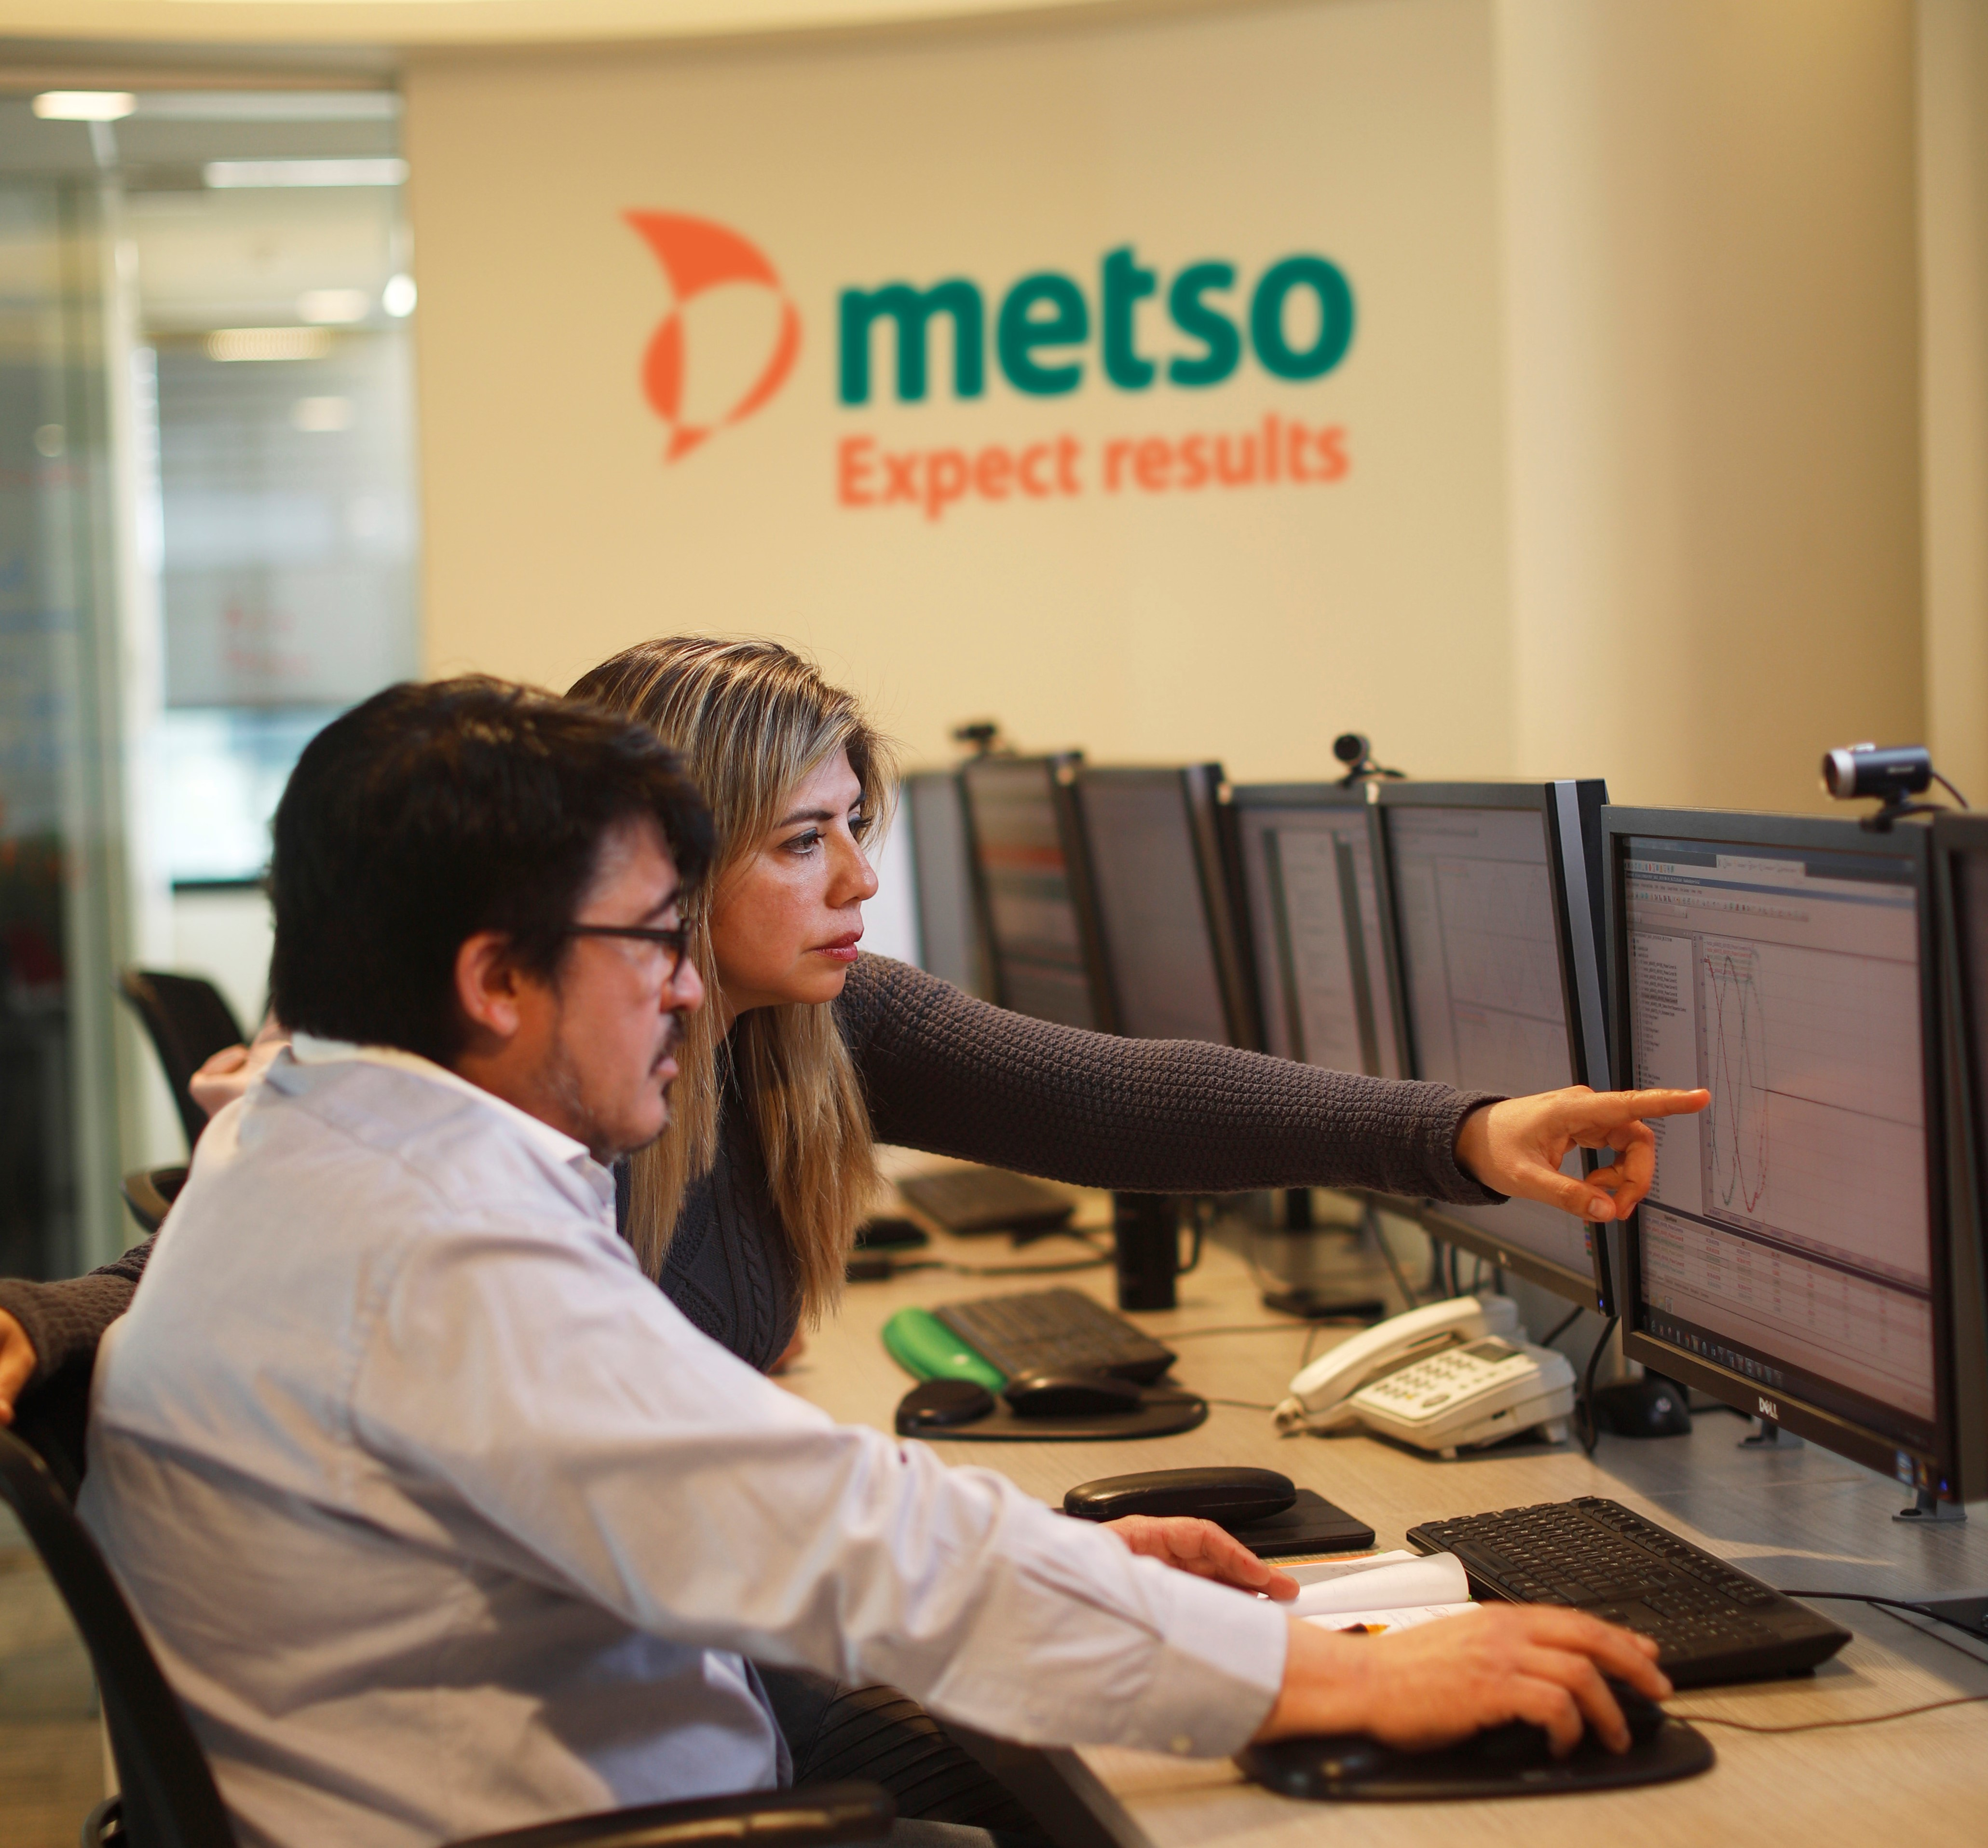 Metso accelerates investments in remote monitoring